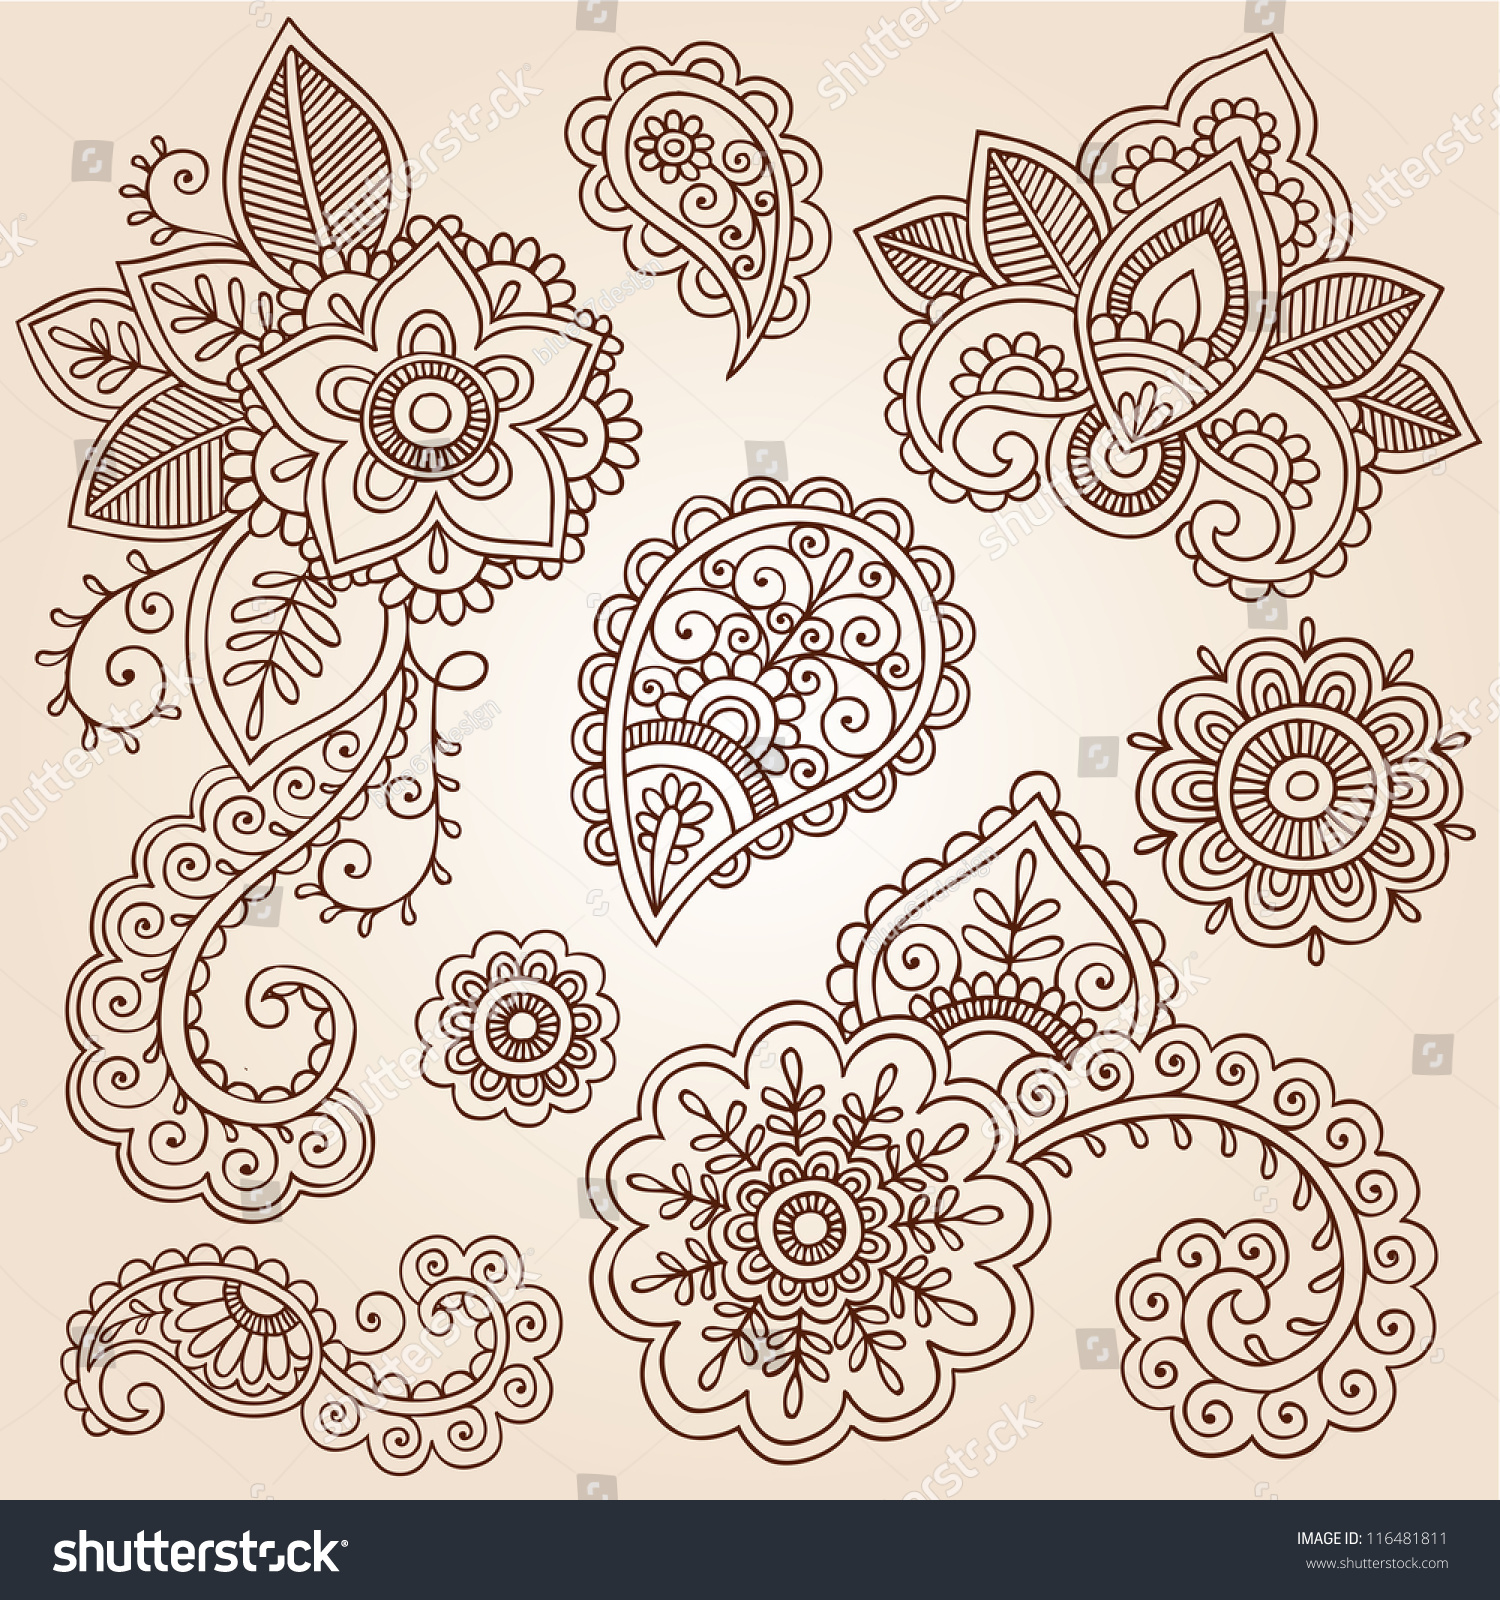 safranin coloring pages - photo #16